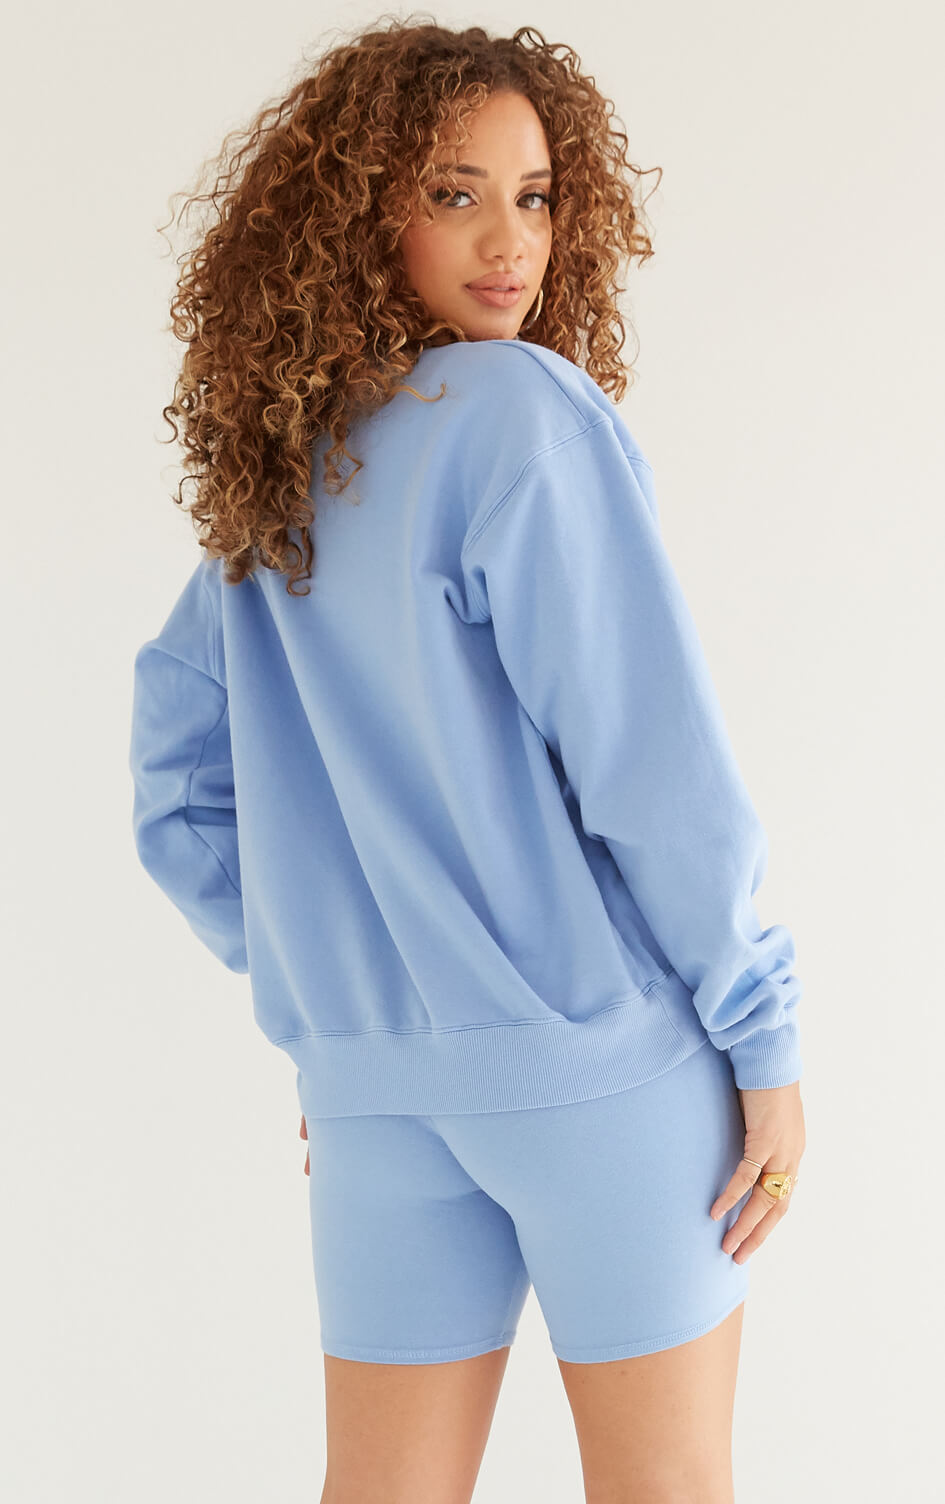 shop-dana-scott-serenity-light-denim-blue-fleece-crew-neck-sweatshirt